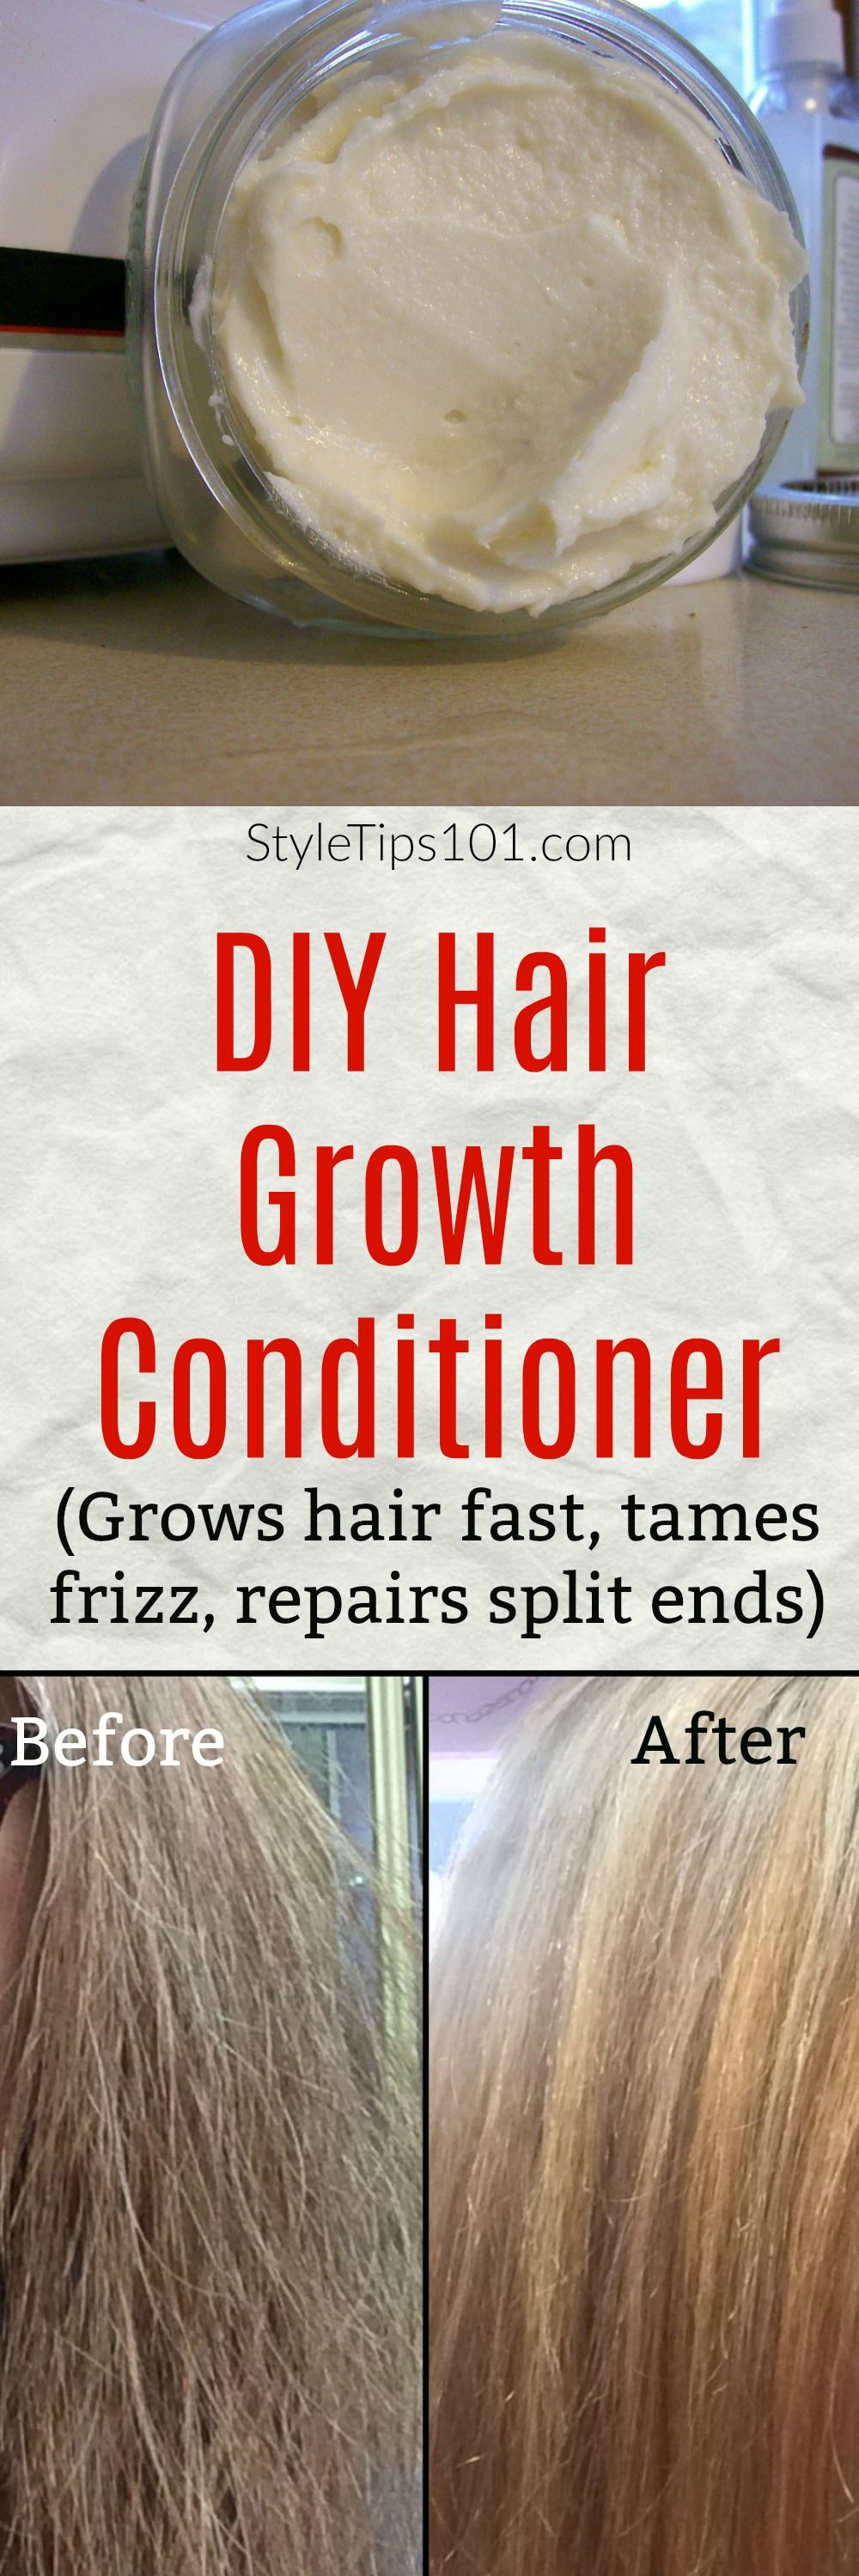 This homemade hair growth conditioner recipe is actually a